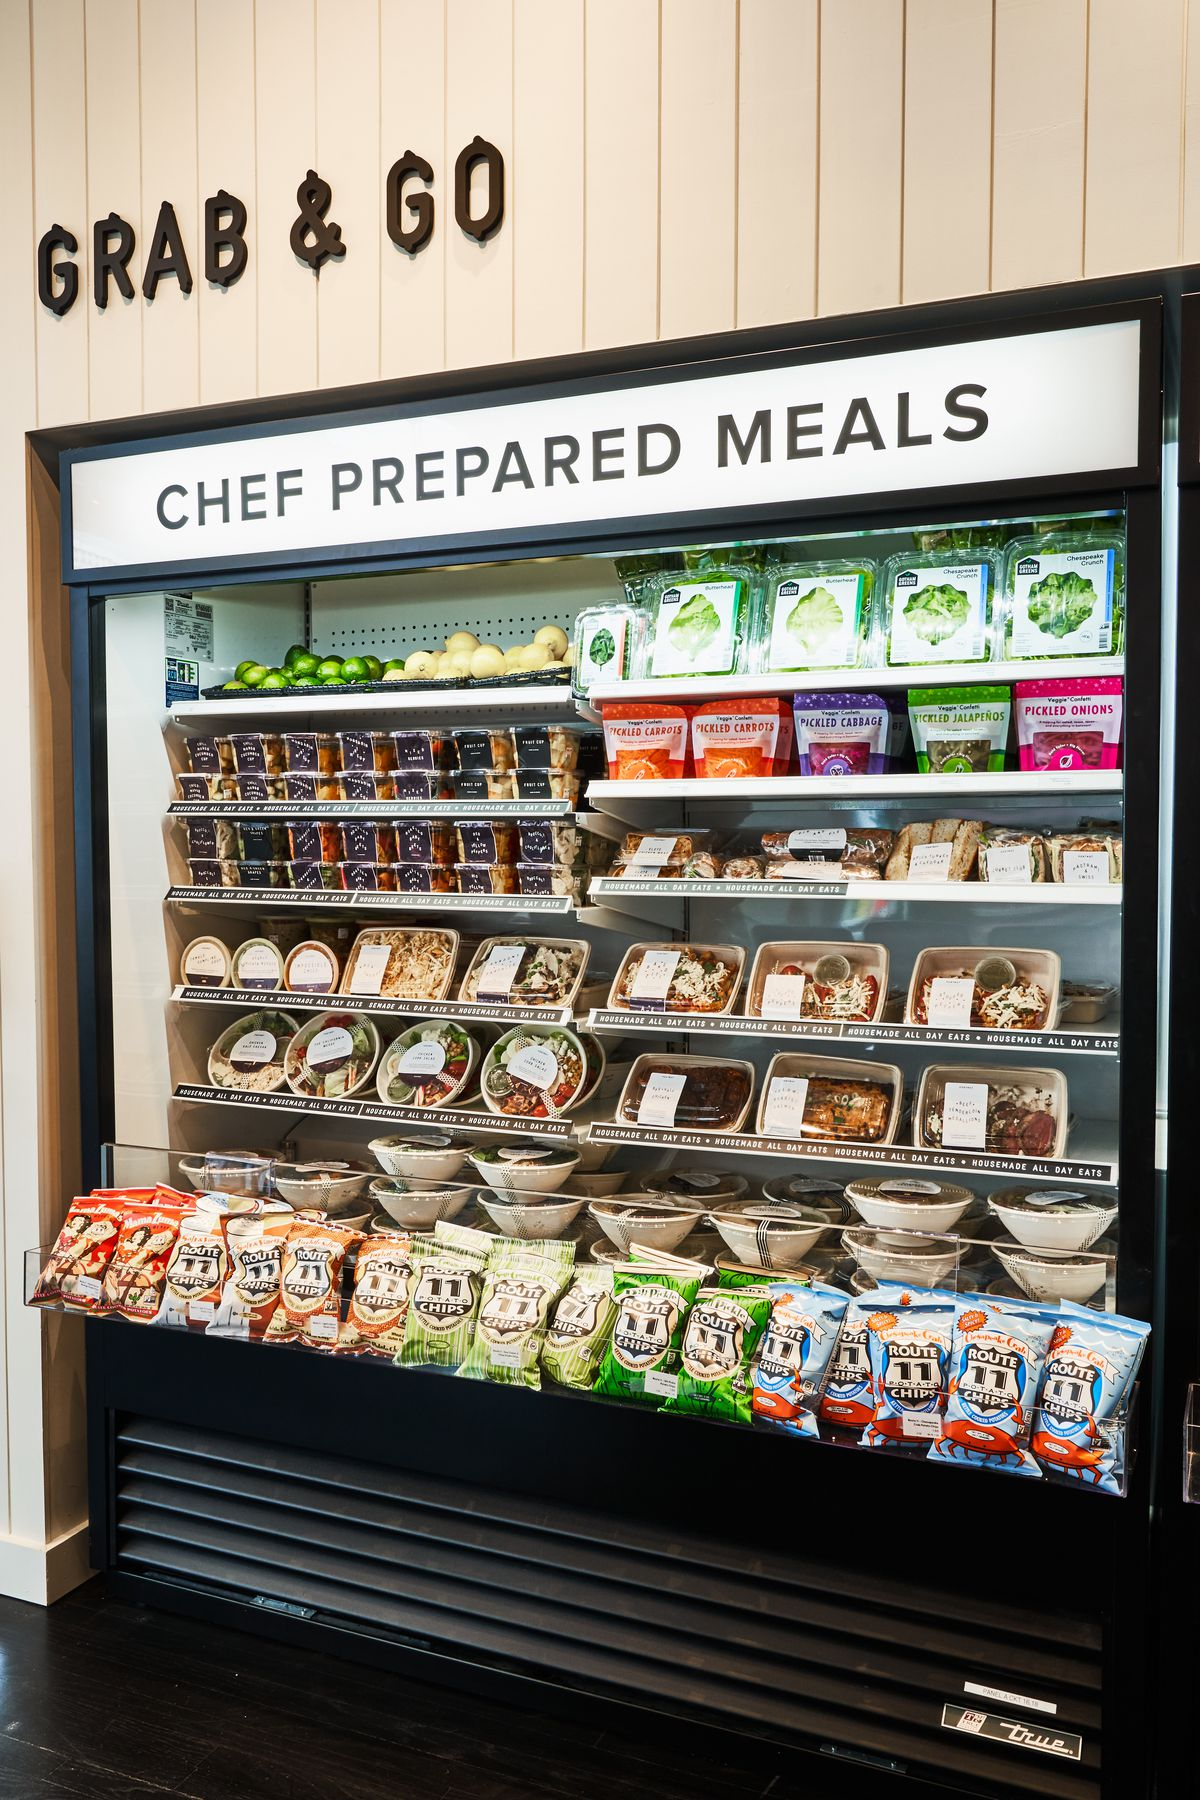 Grab-and-go meals and Route 11 Chips from Virginia at Foxtrot's Georgetown store